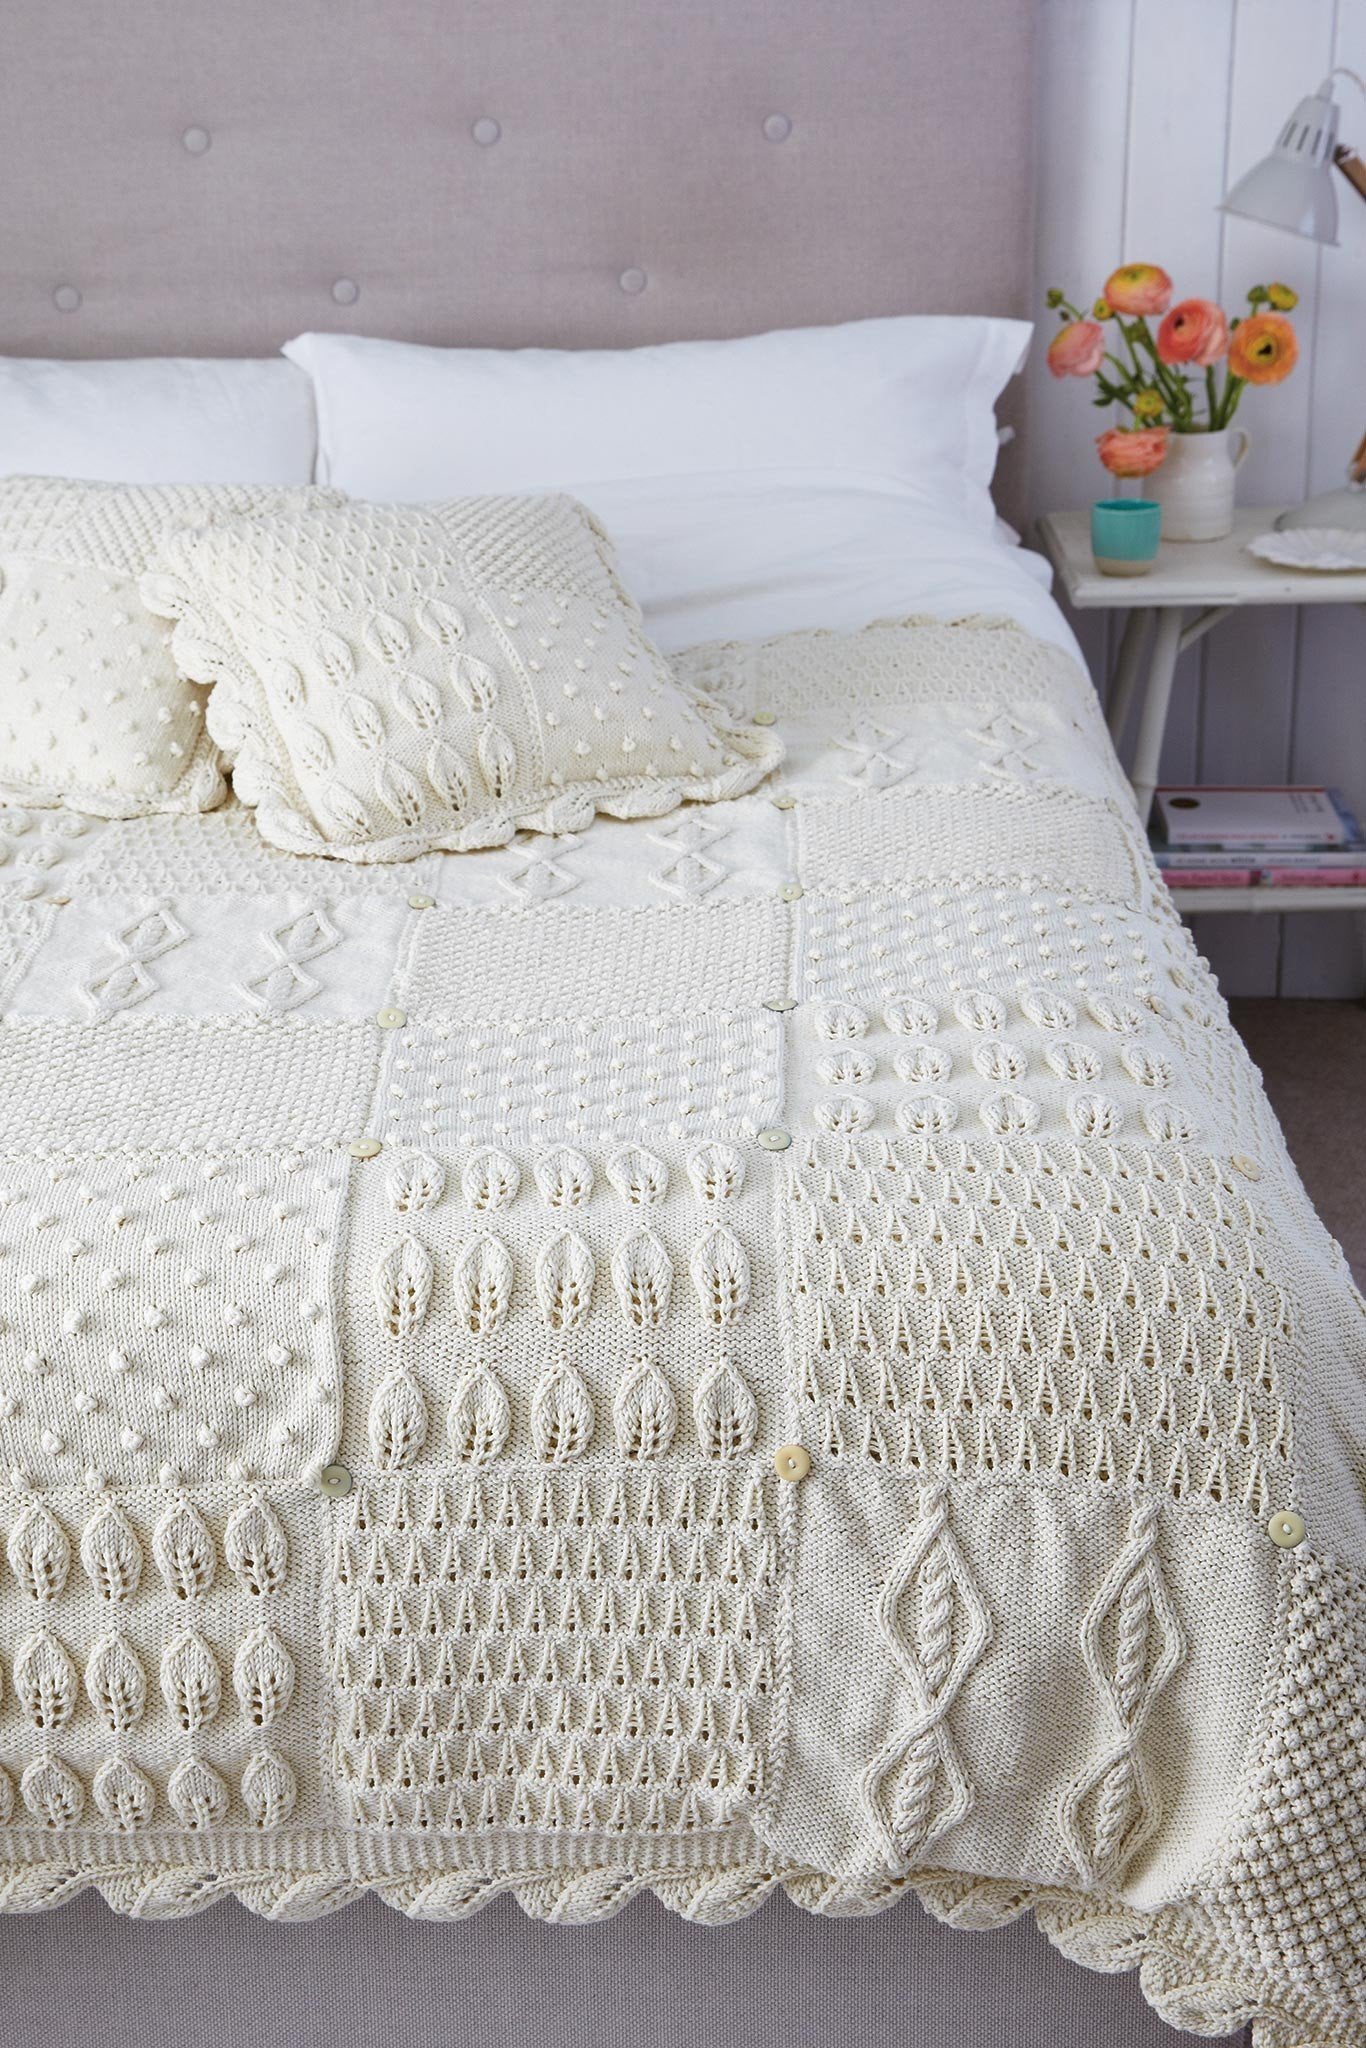 Bed Topper And Cushion Knitting Patterns – The Knitting Network